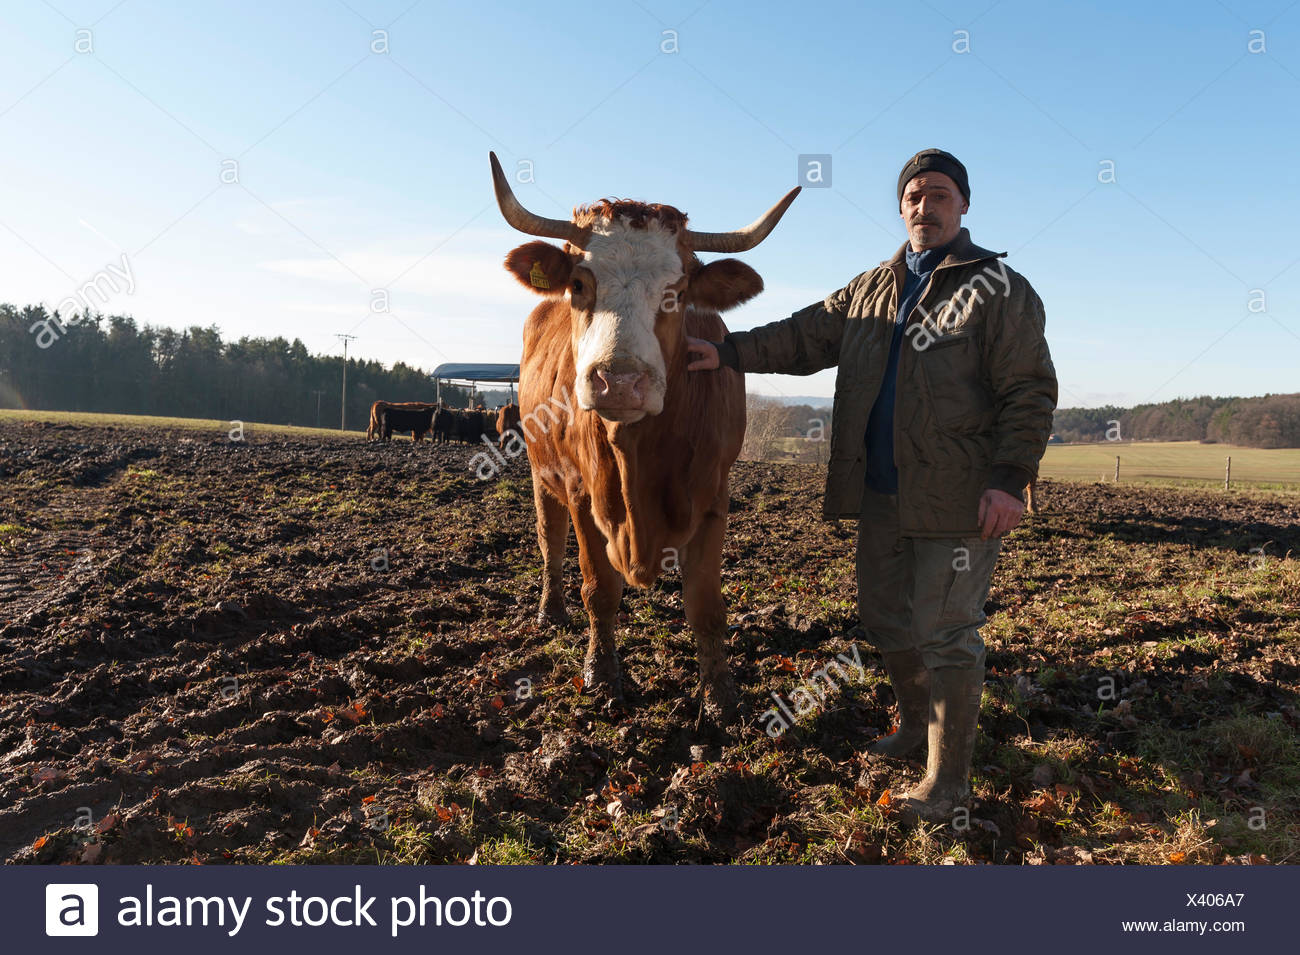 Farmer with Salers cow in pasture, Middle Franconia, Bavaria, Germany - Stock Image